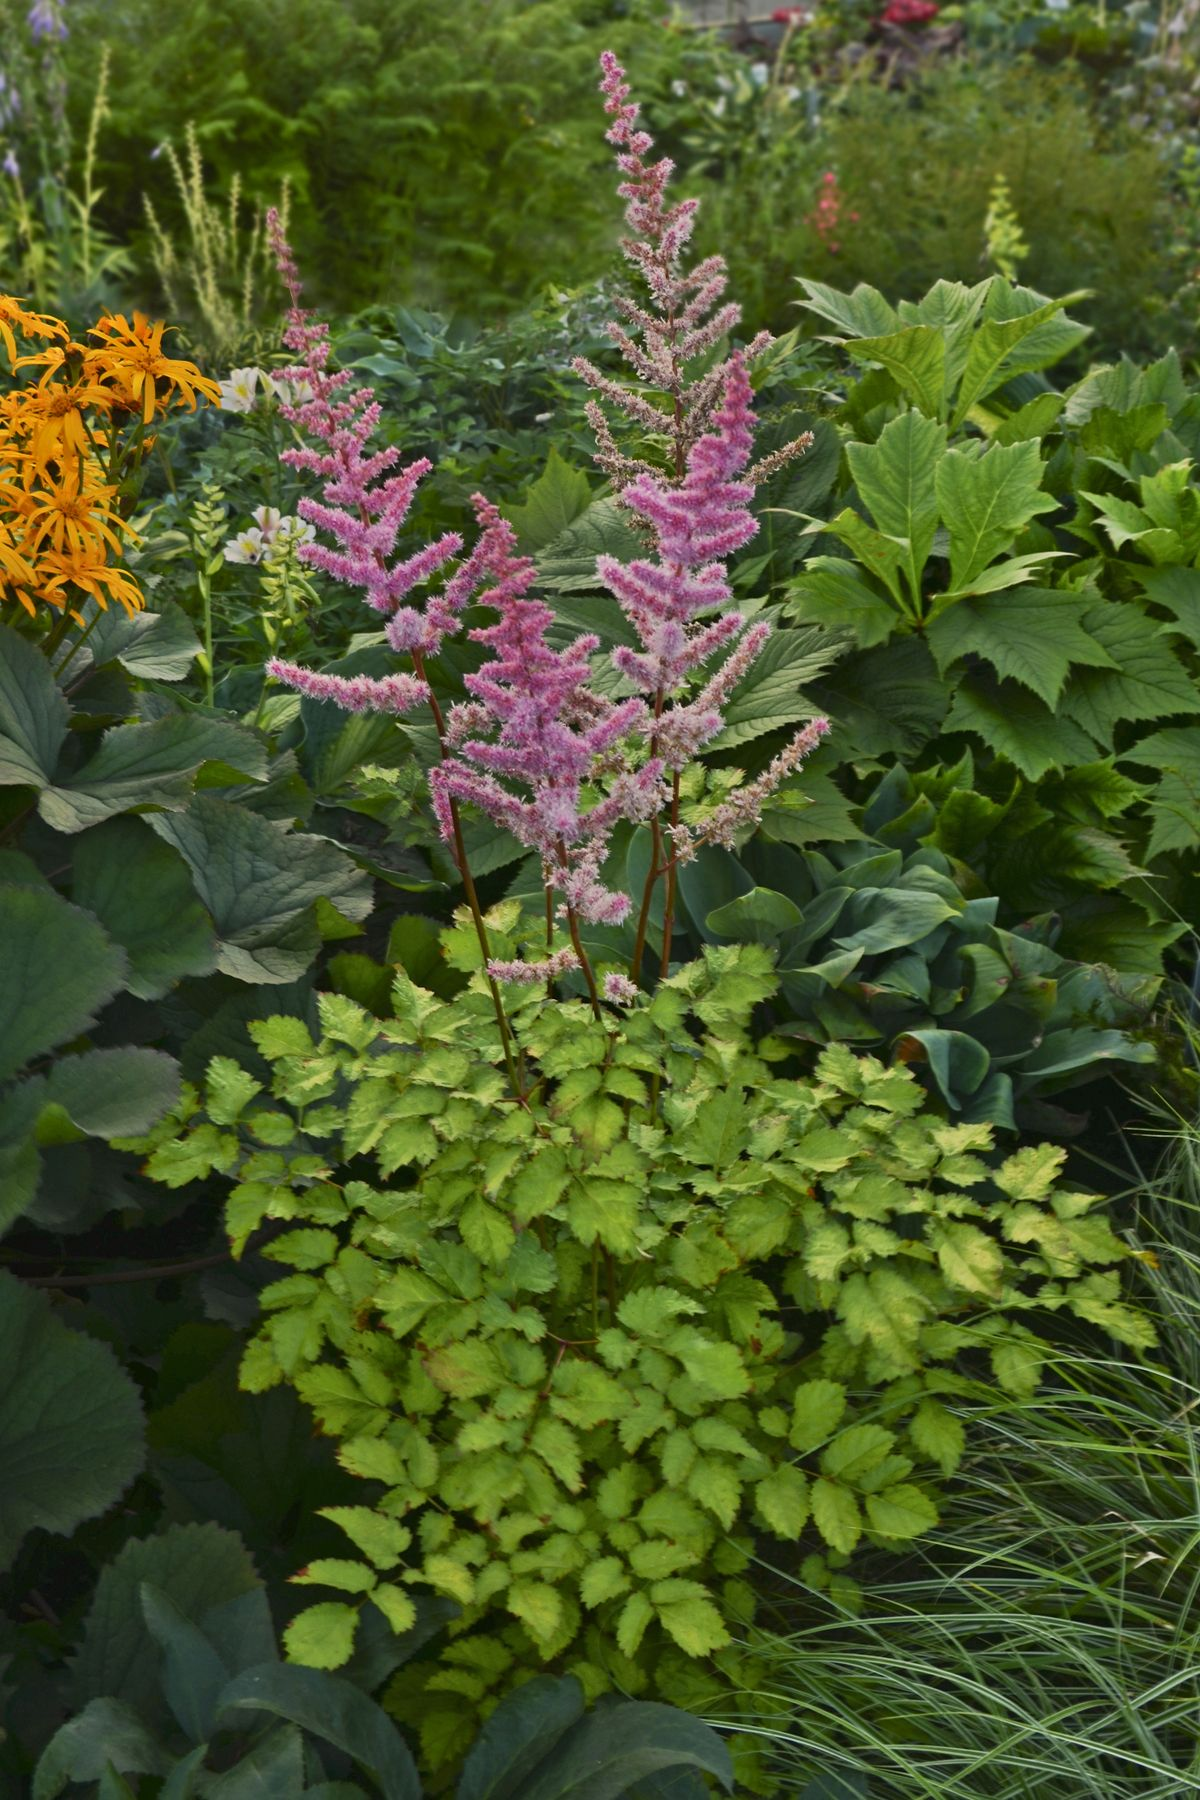 Astilbe Amber Moon Golden Chartreuse Leaves With Rose Pink